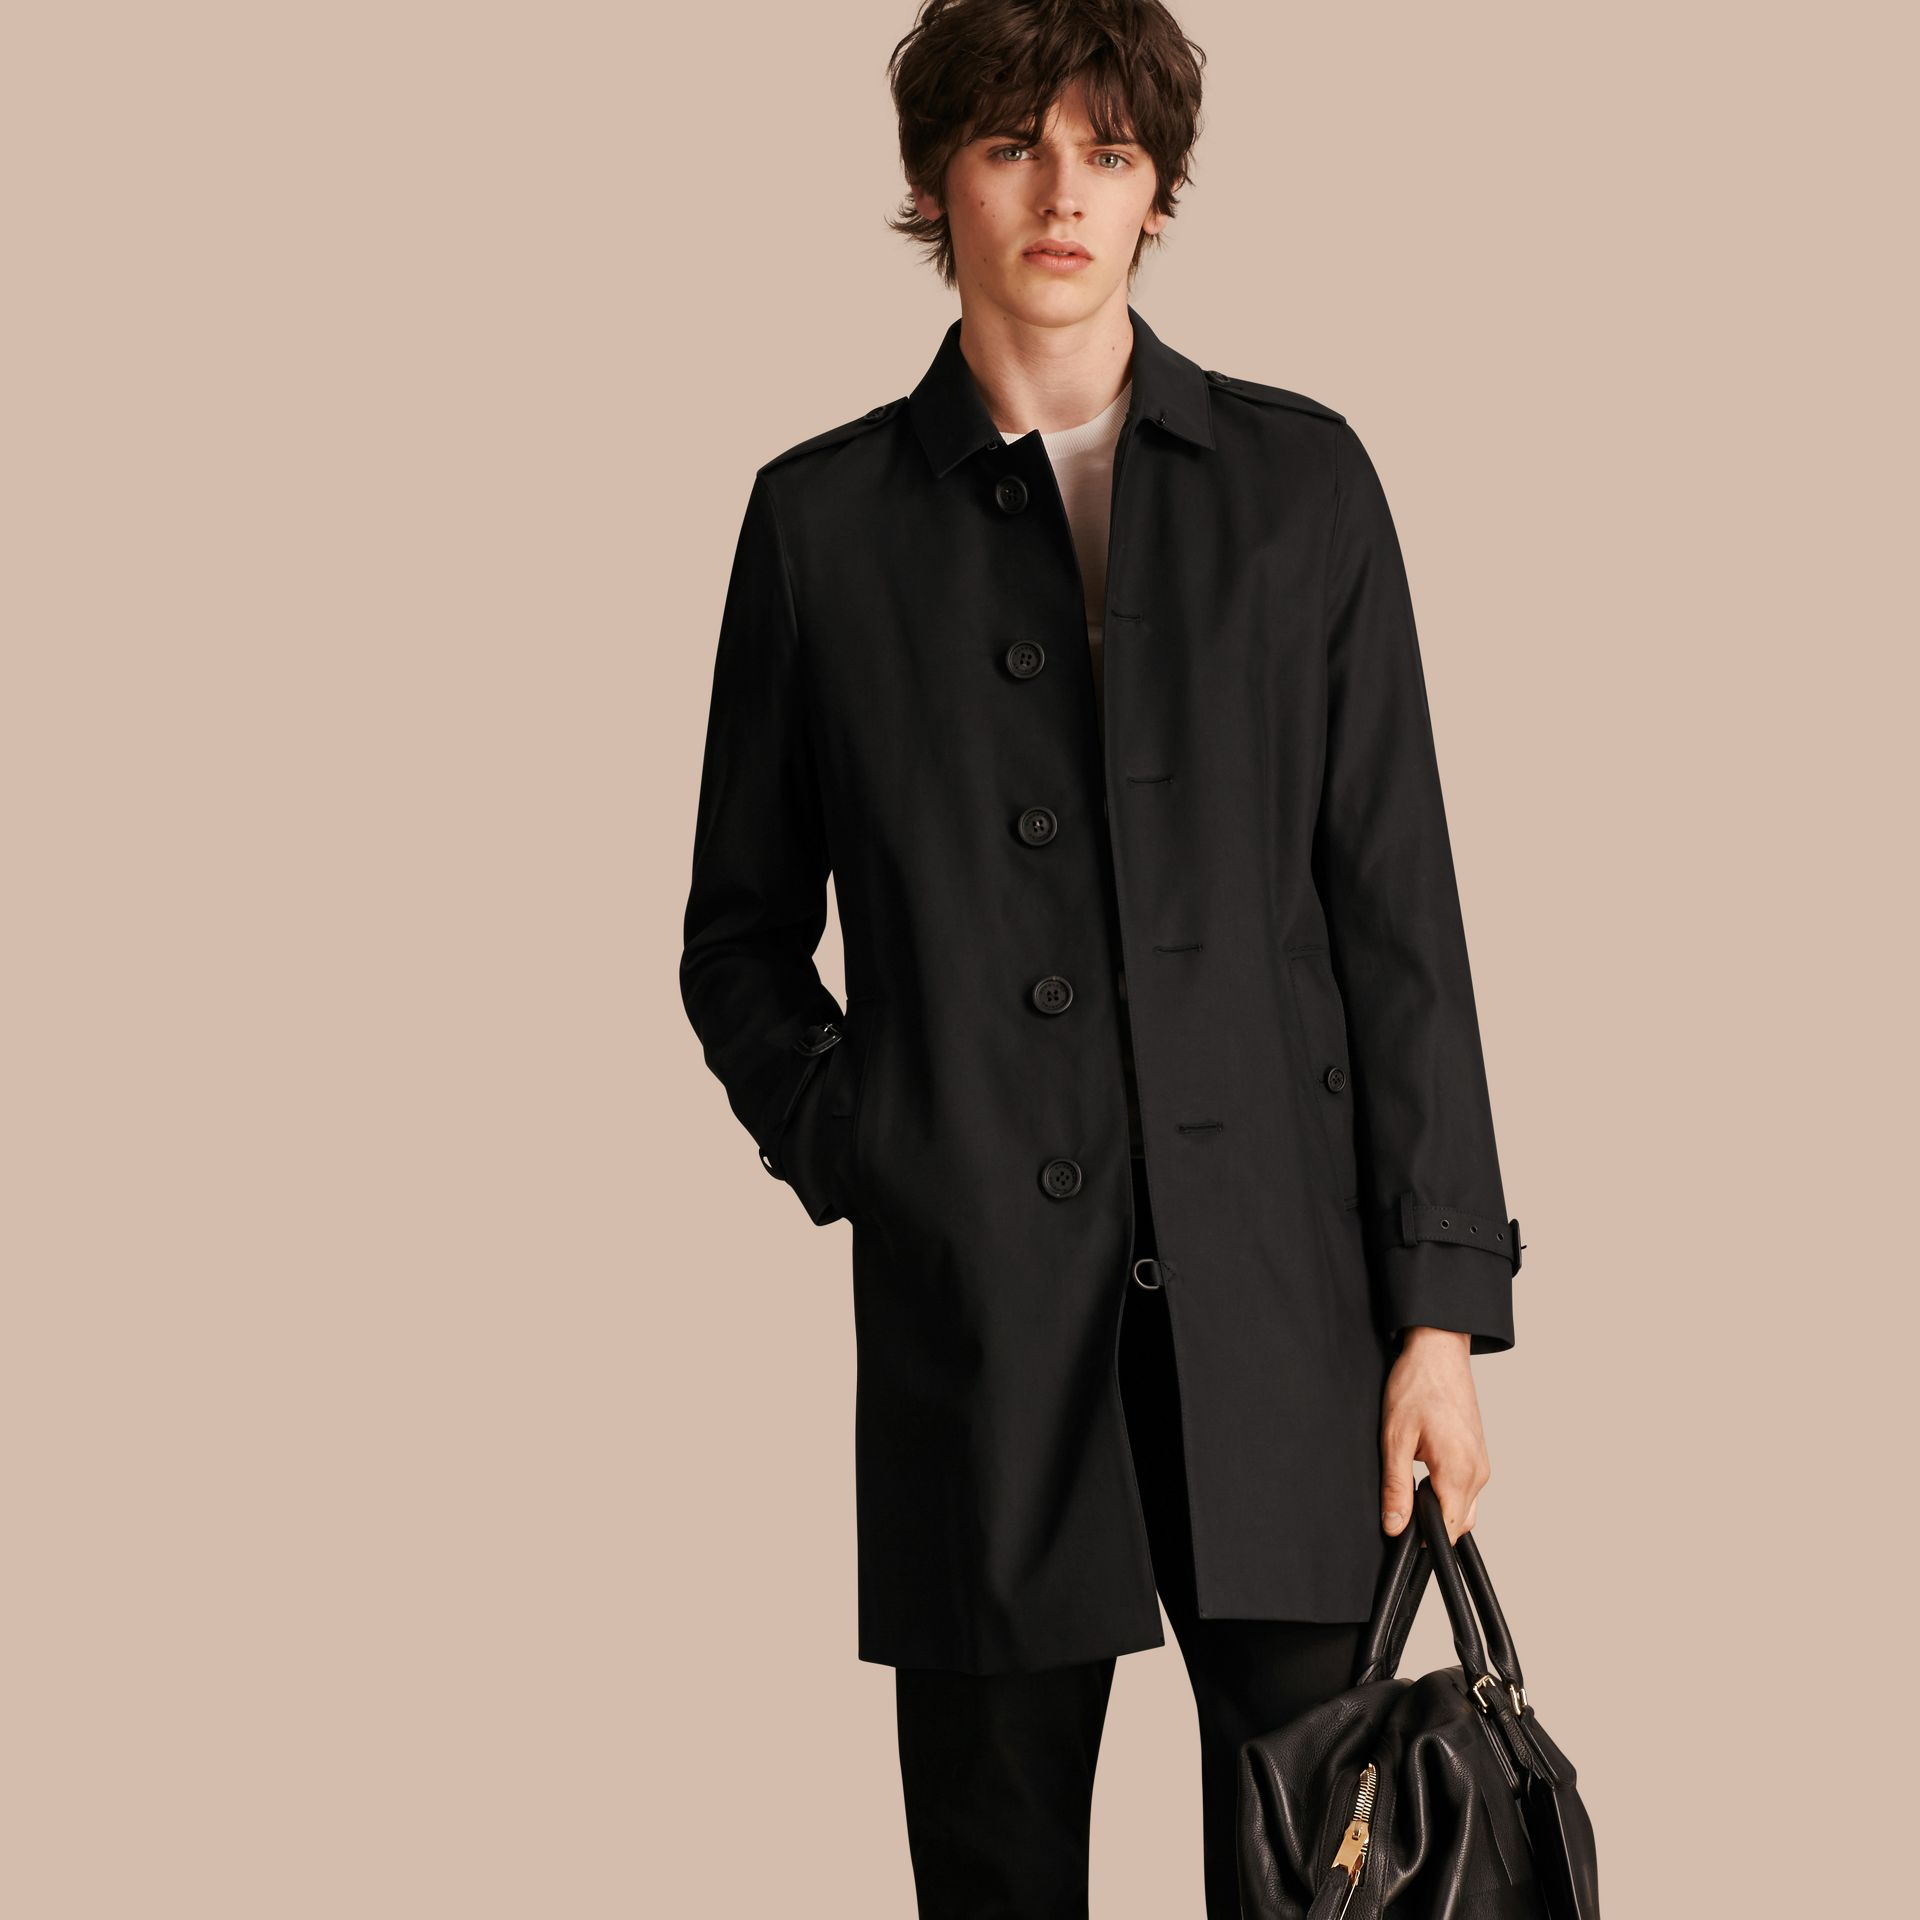 Noir Trench-coat en gabardine de coton - photo de la galerie 1